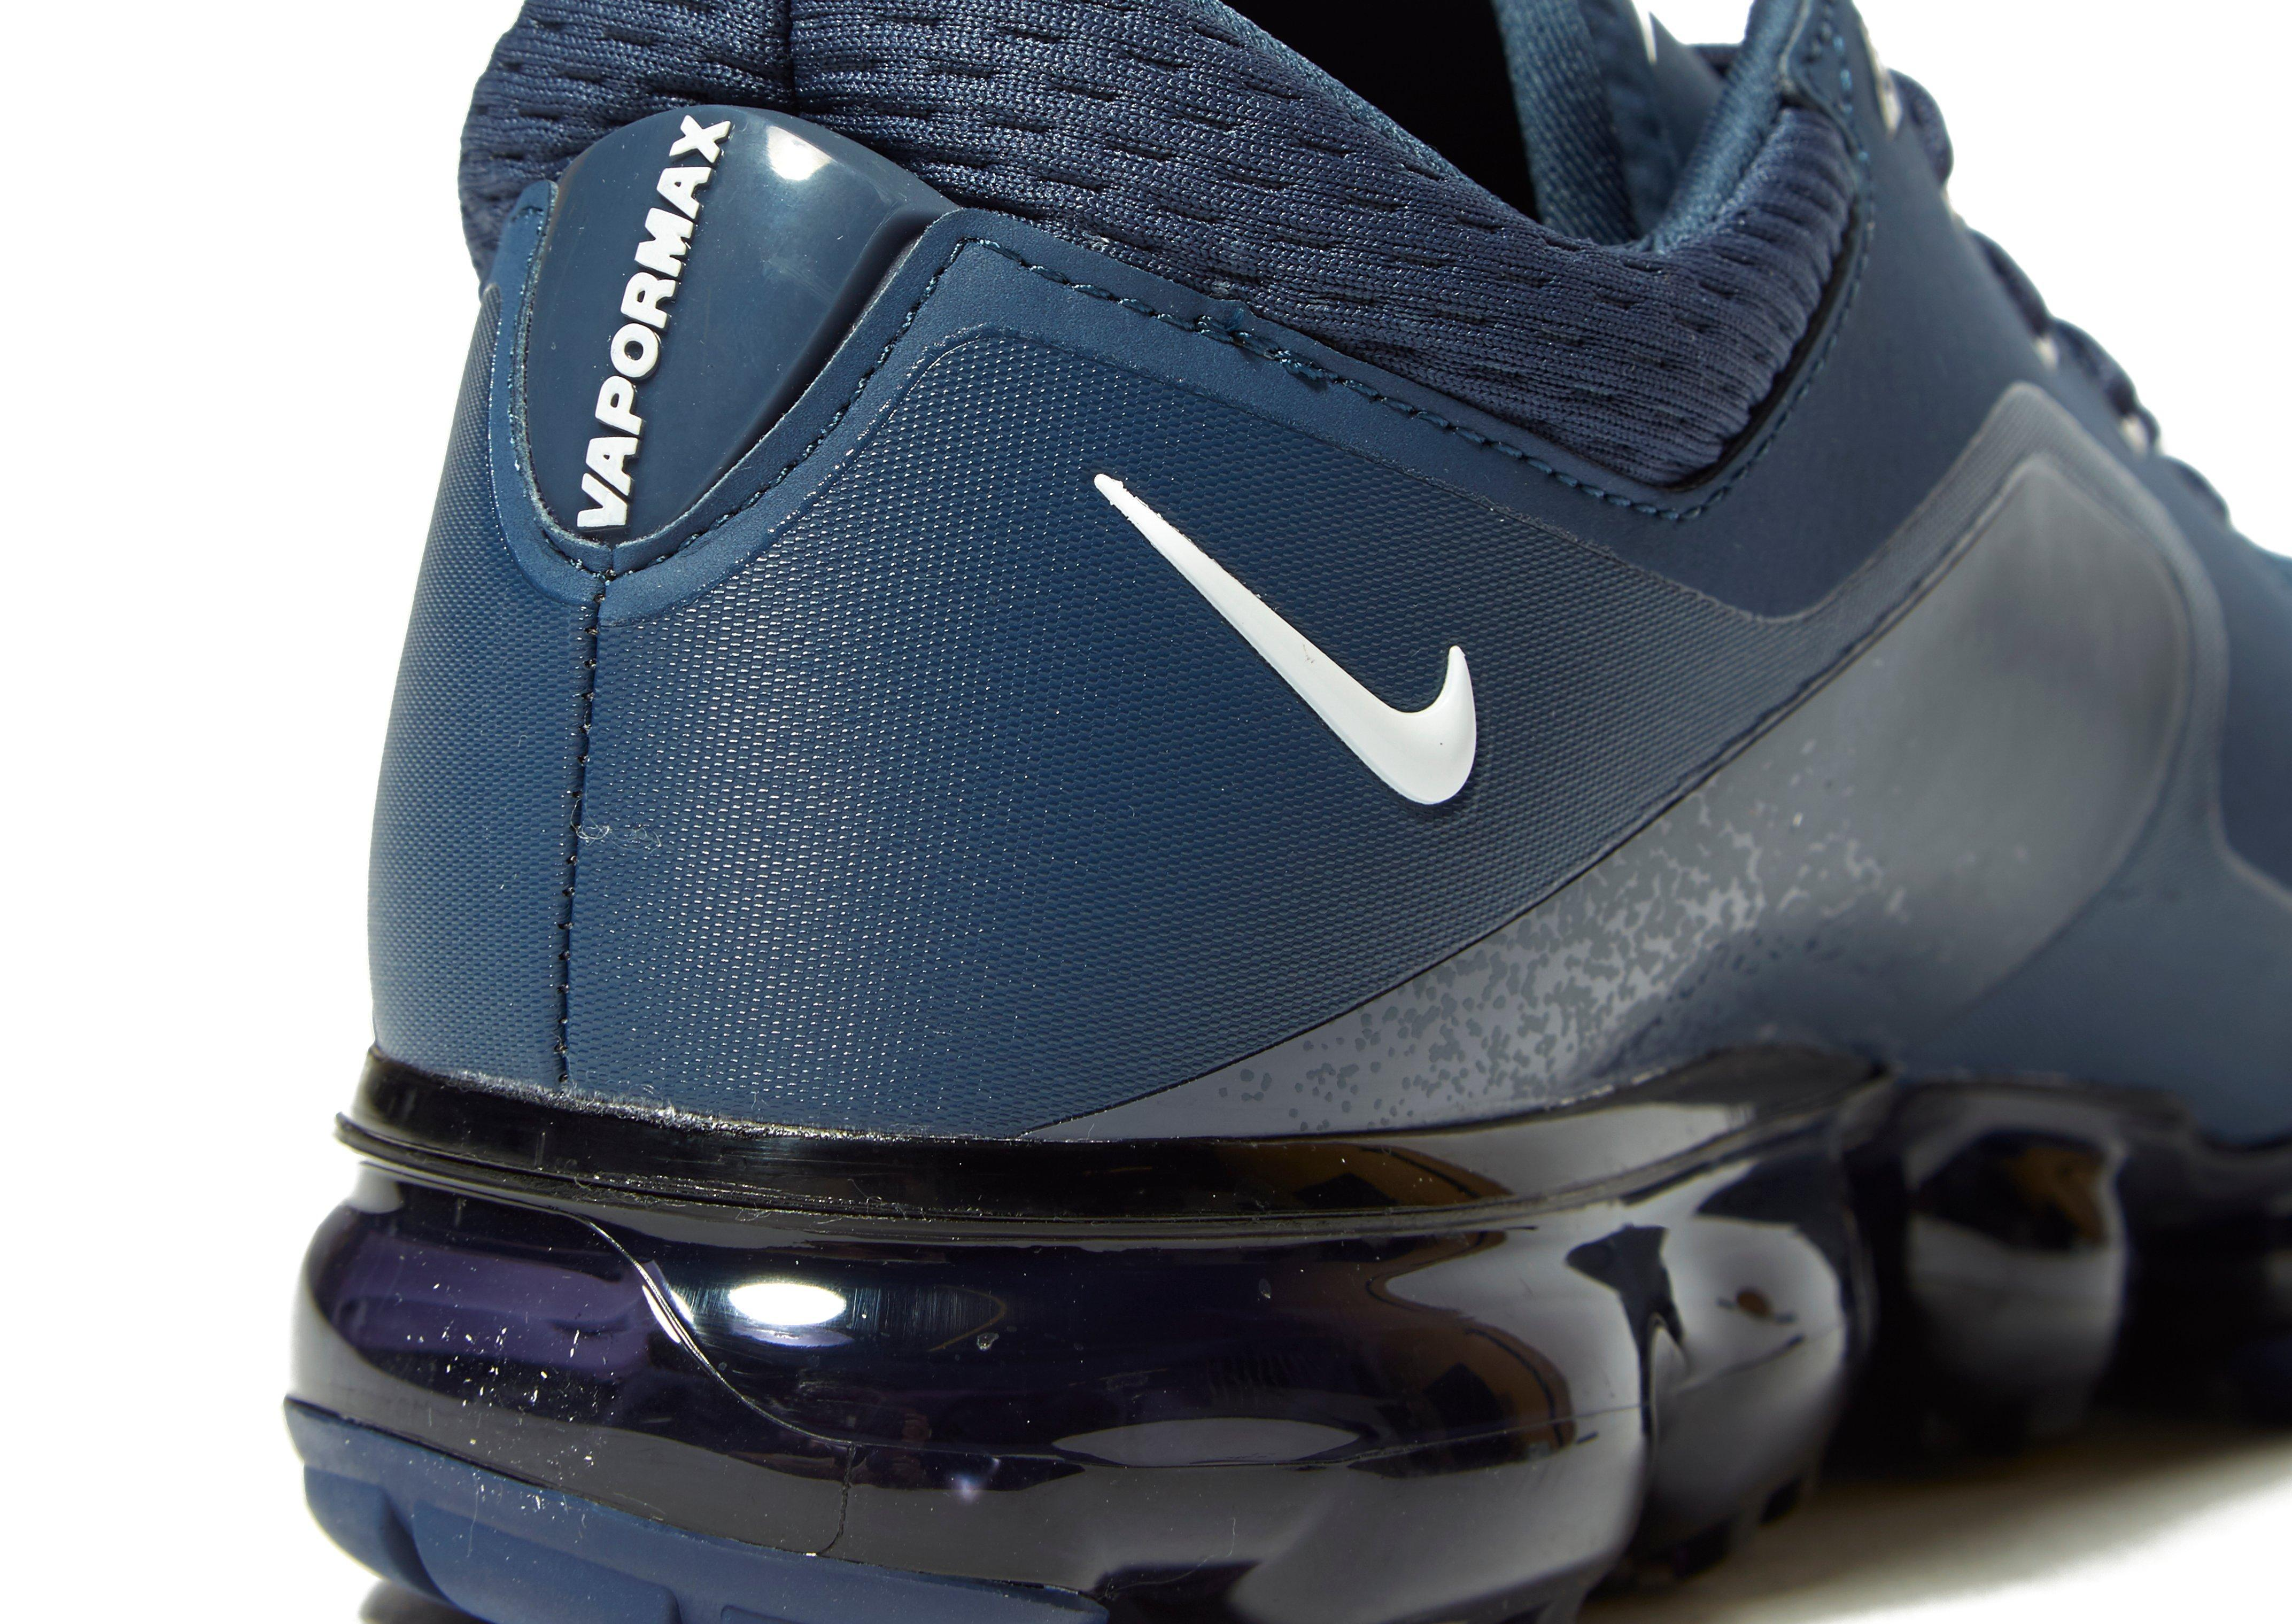 Nike Synthetic Air Vapormax in Blue/White (Blue) for Men